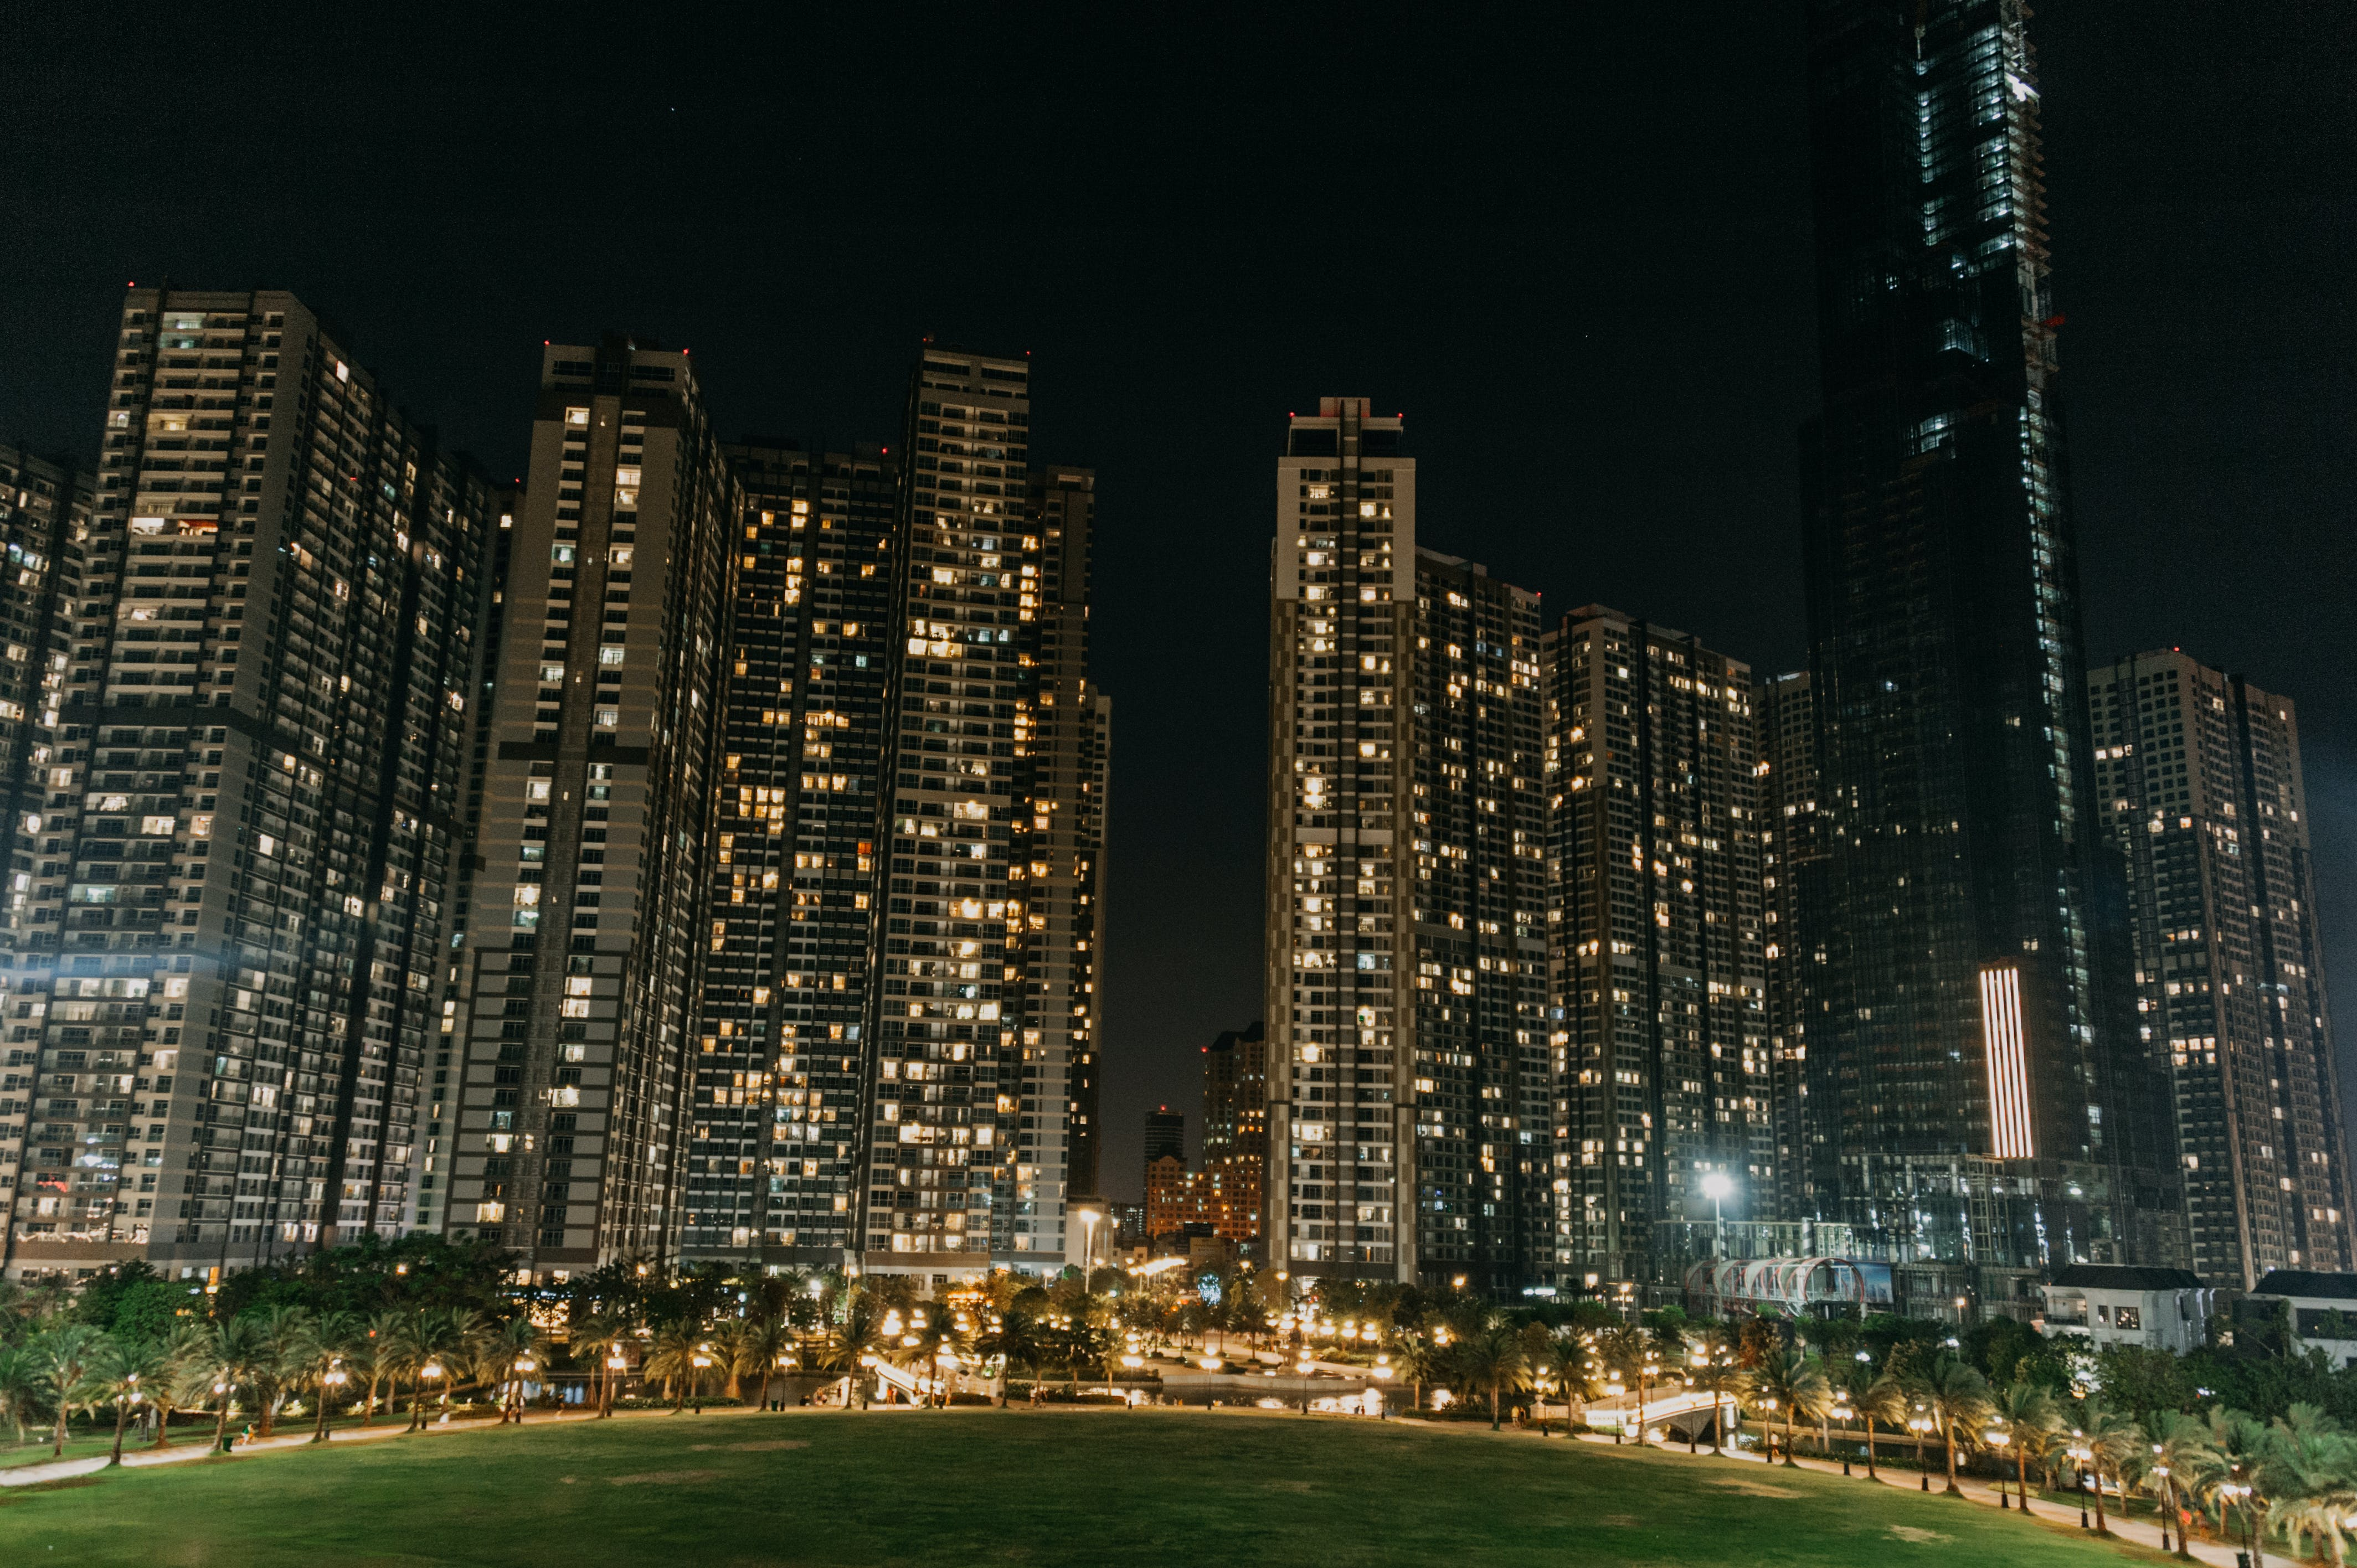 Lightened High Rise Buildings at Night Time